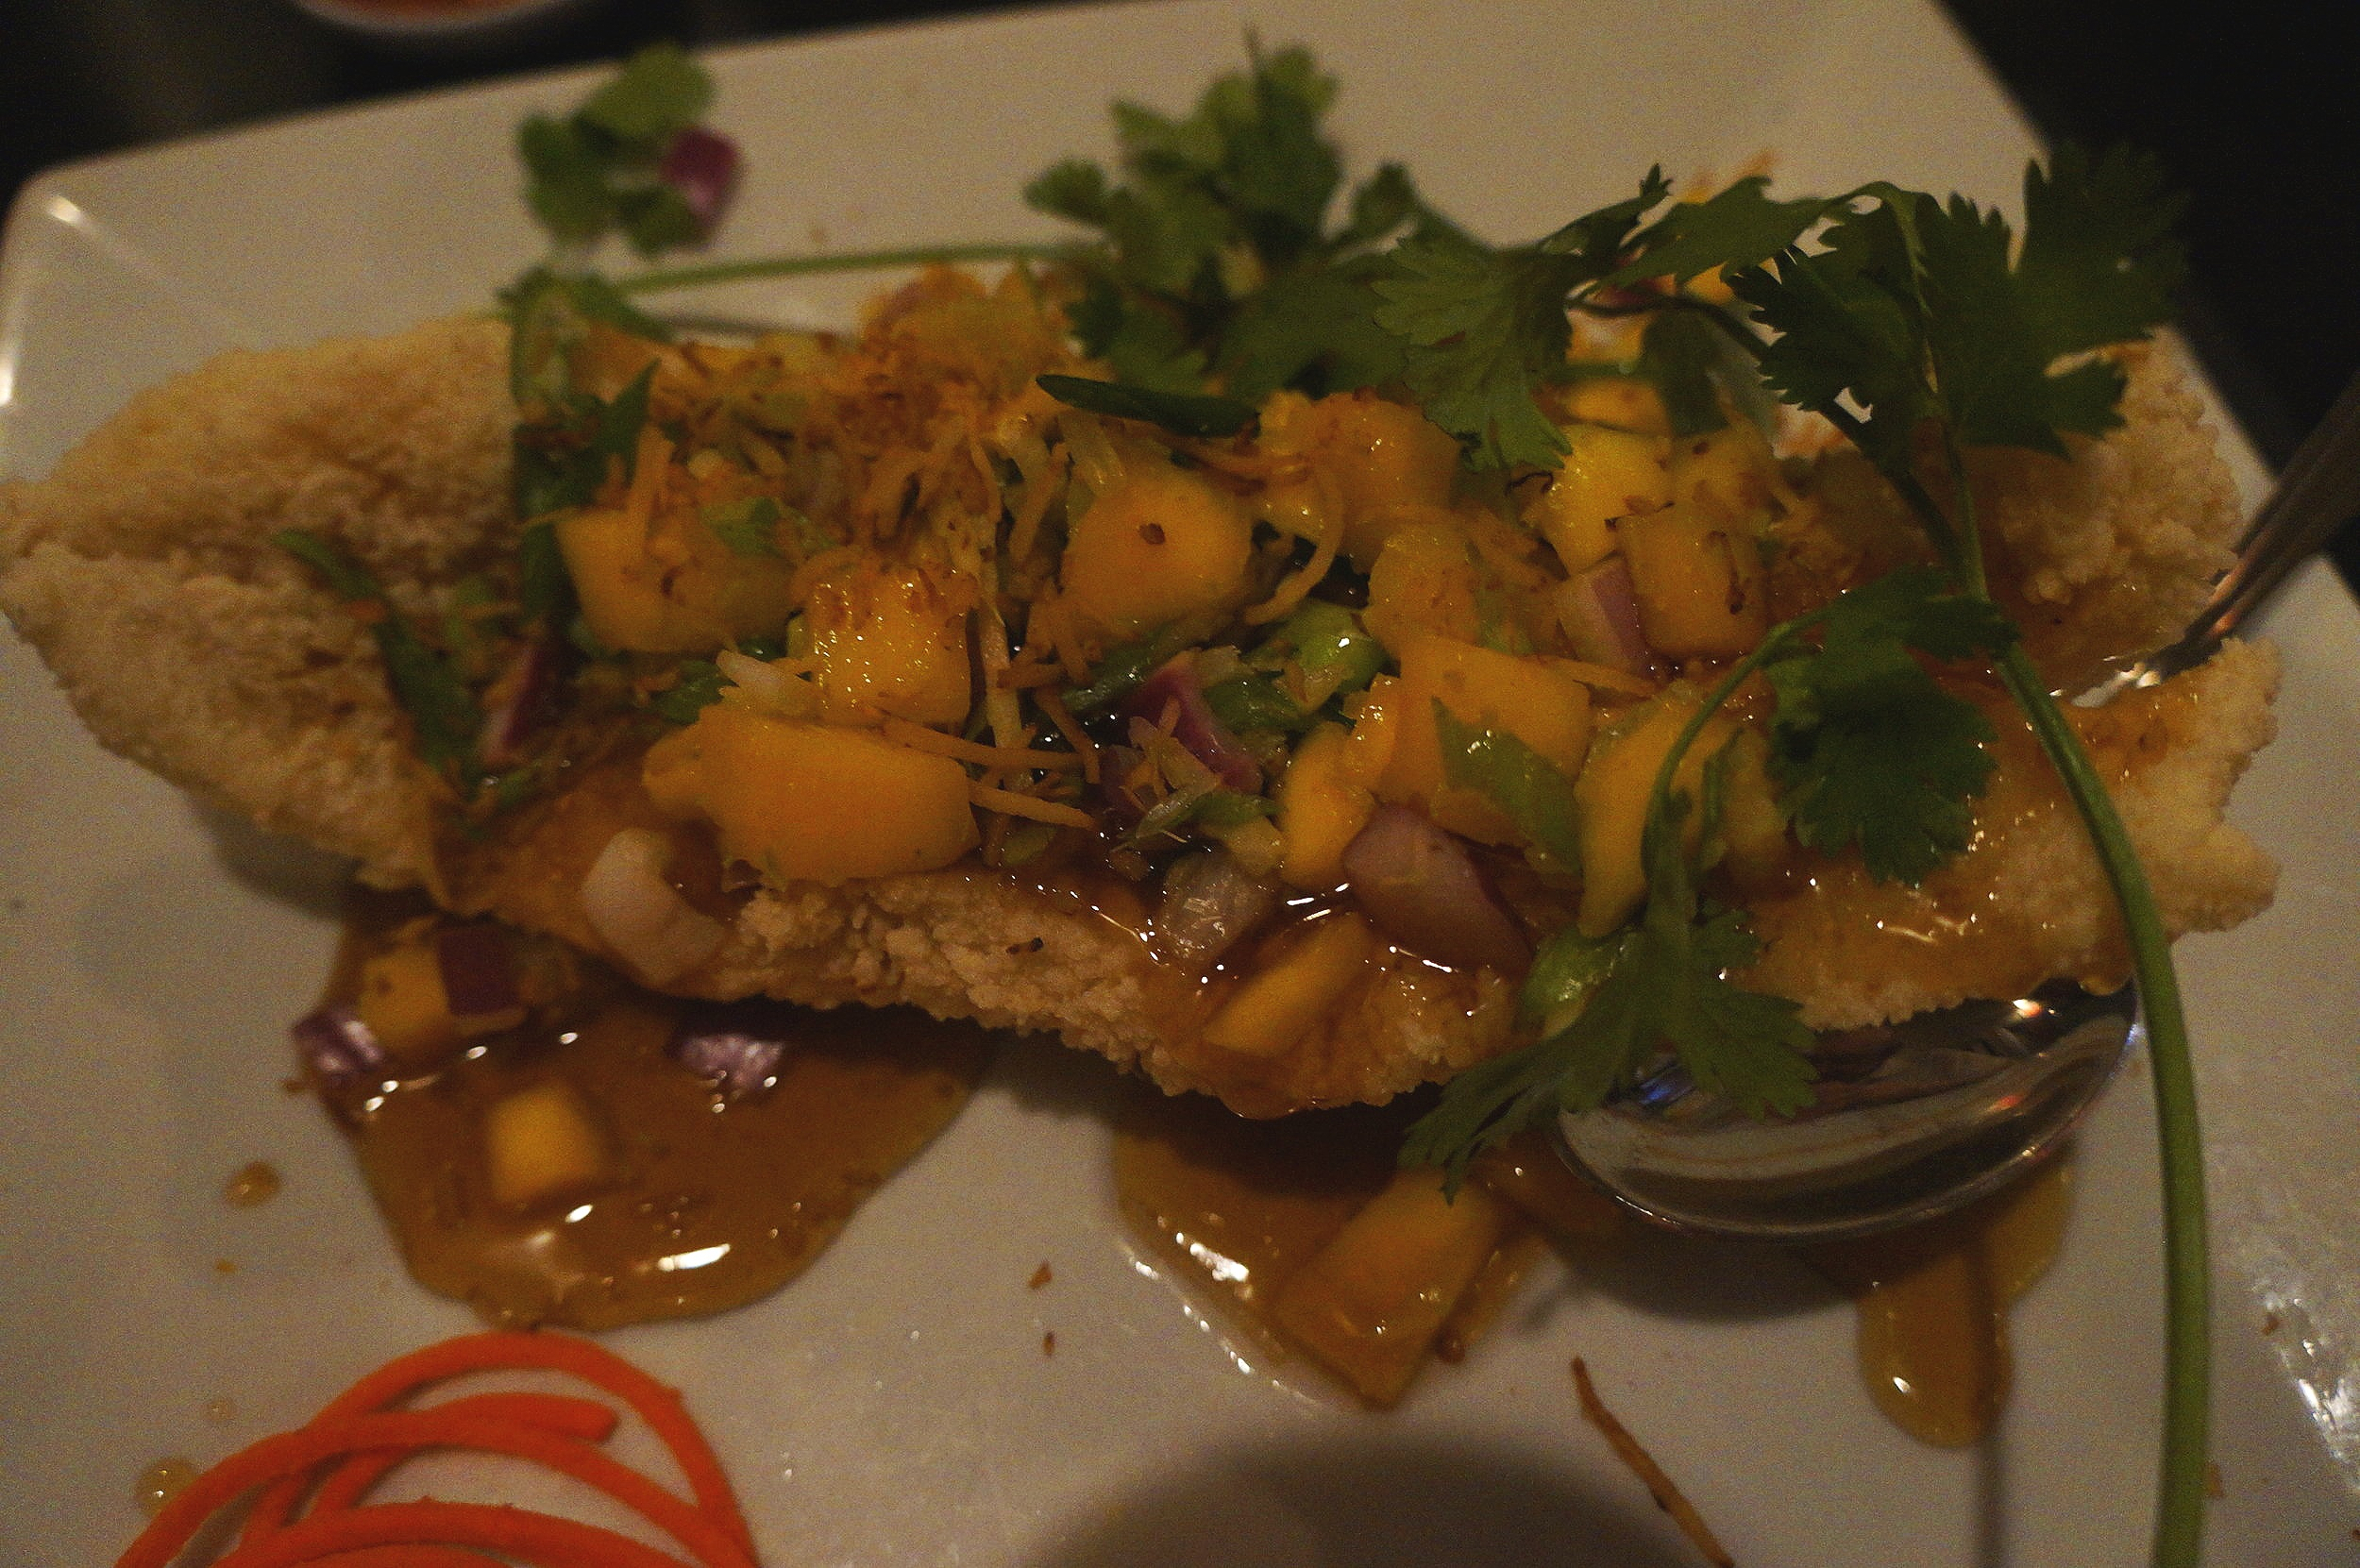 Crispy Mango Fish - One crispy ten oz fish filet topped with ripe mango, onion, ginger, lemongrass, toasted coconut flakes & lime drizzled with a sweet tamarind sauce.